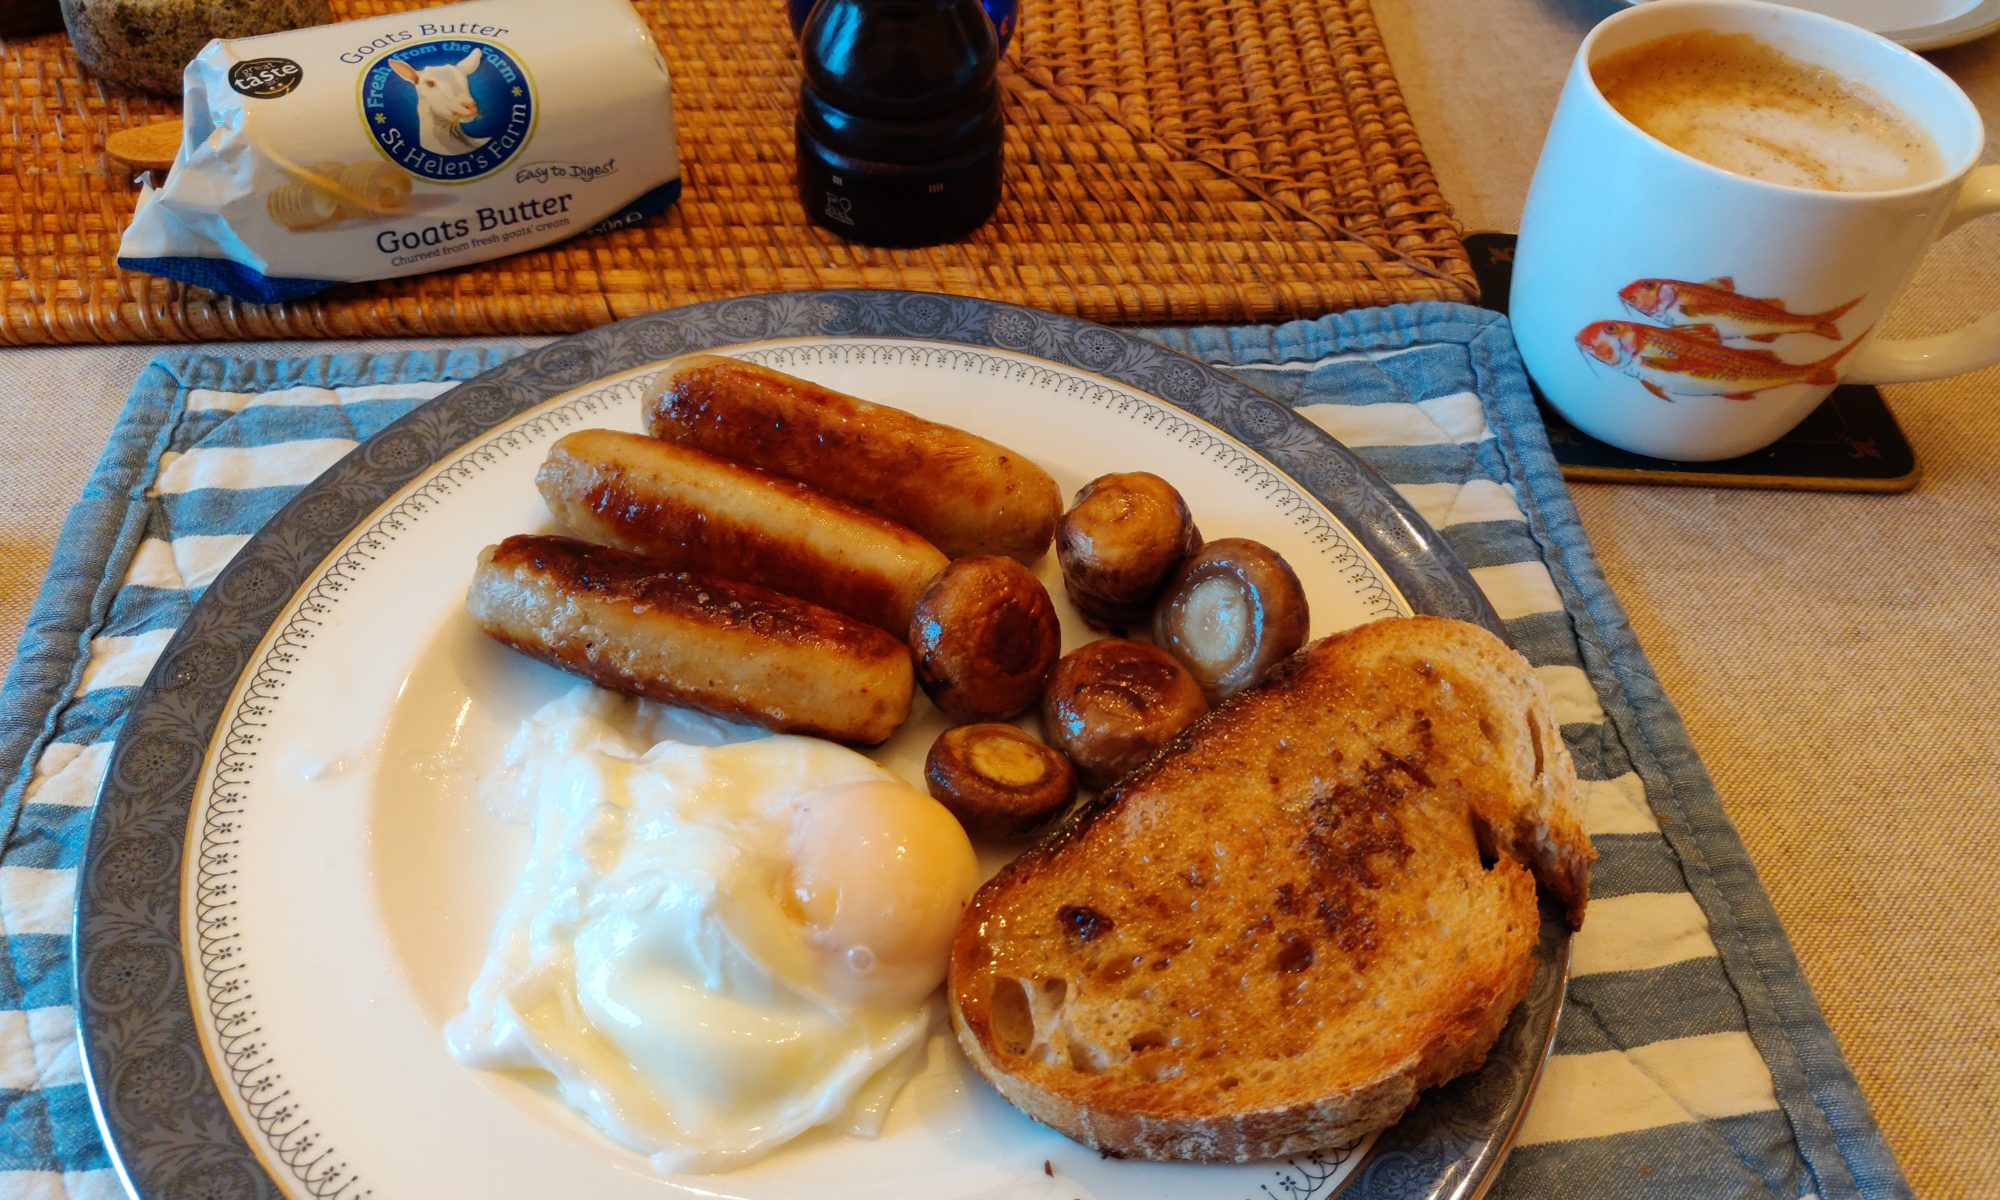 Full English Cooked Breakfast without pork, dairy (cow milk) and tomatoes